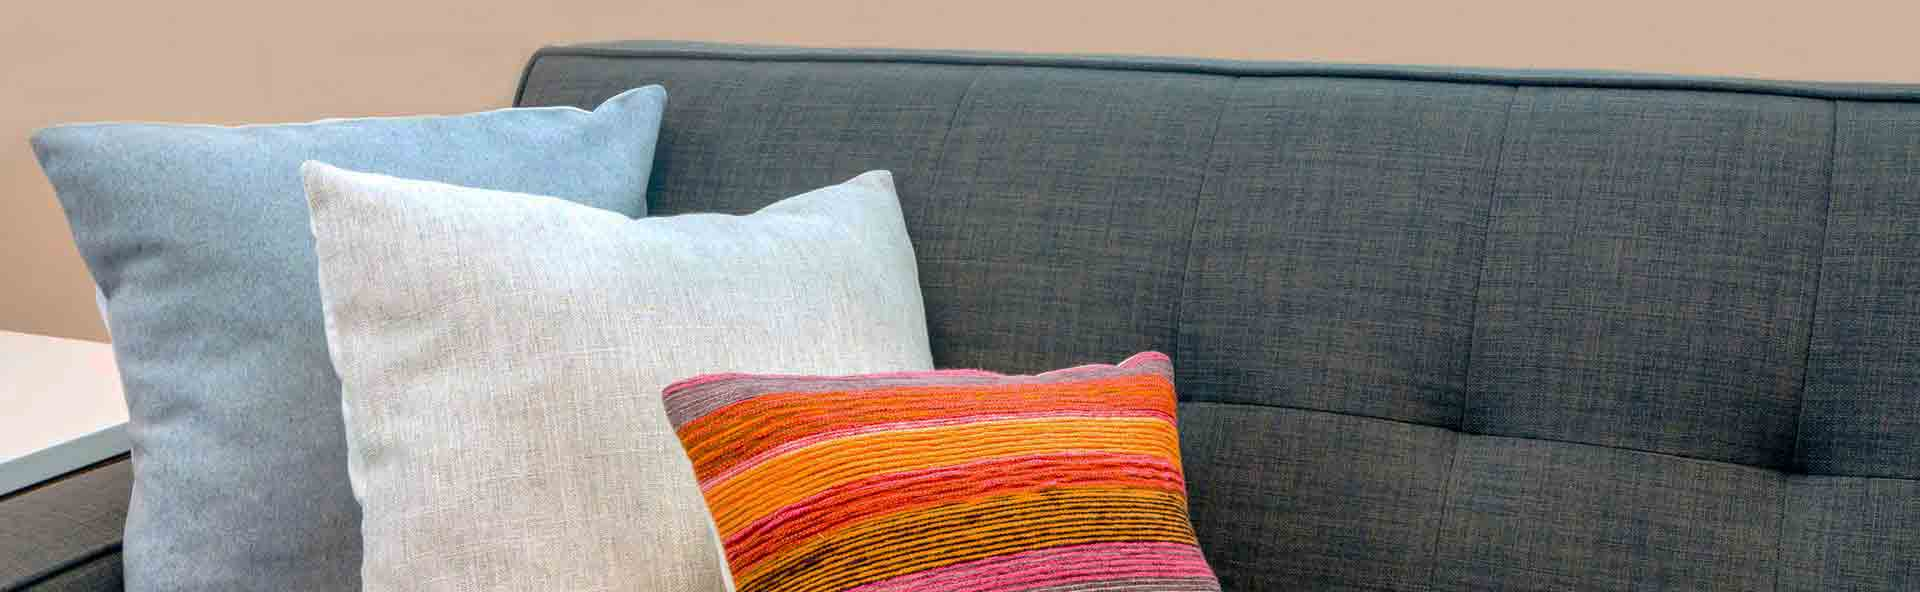 Professional Upholstery Cleaning Halifax